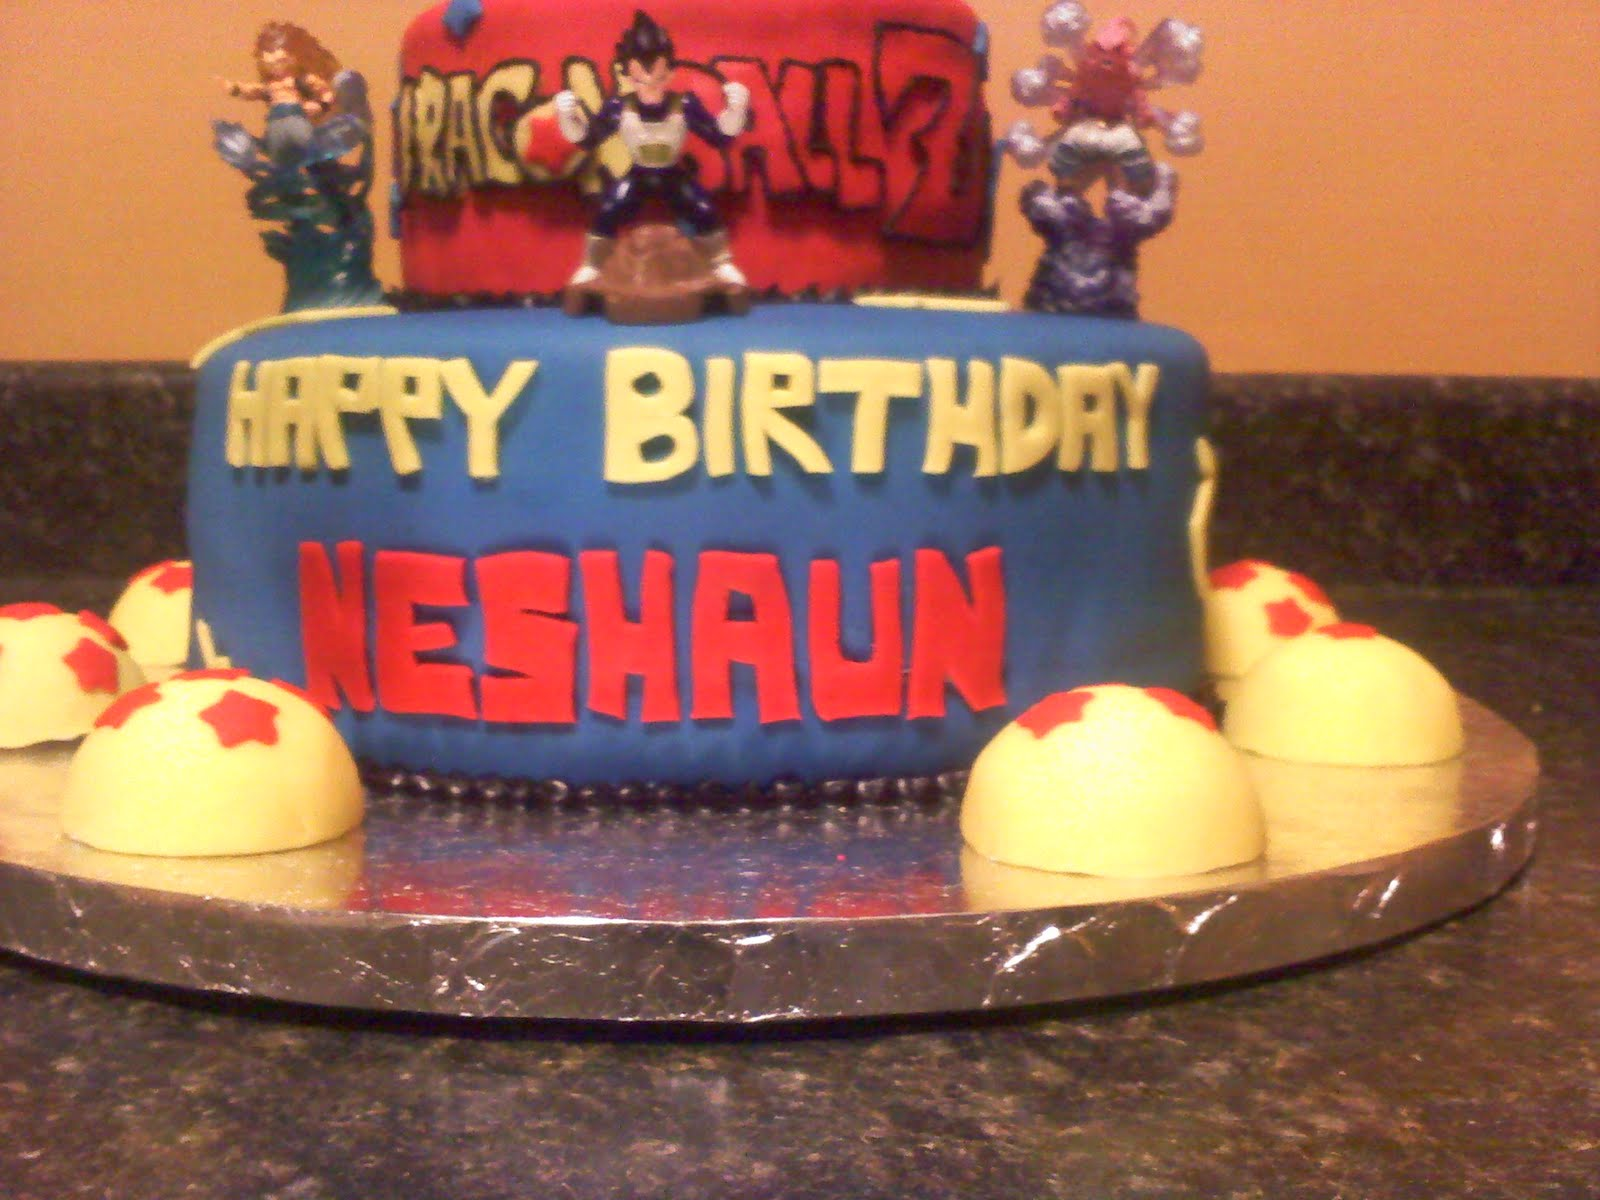 Lick Your Lips Cakes: DragonBall Z Cake